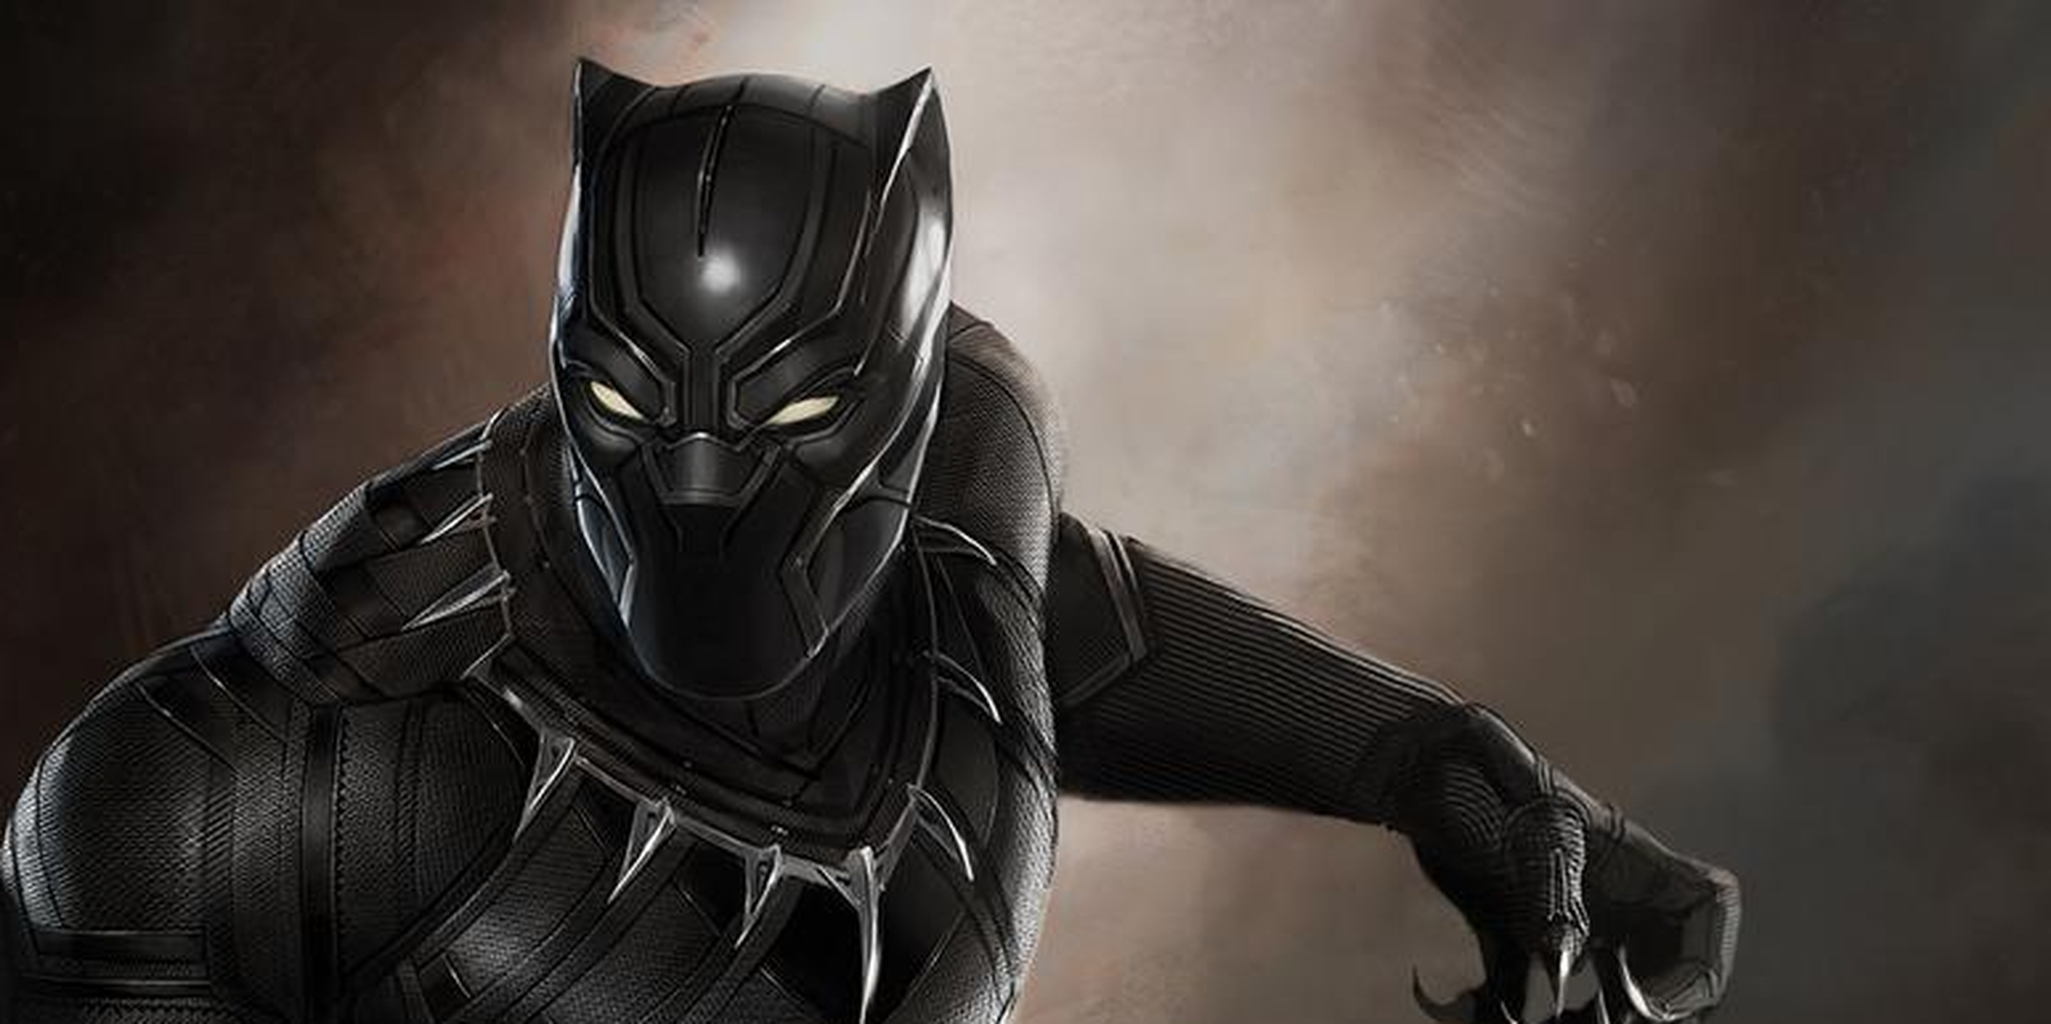 Black Panther Movie Download Free Pure Hd Quality Mobile